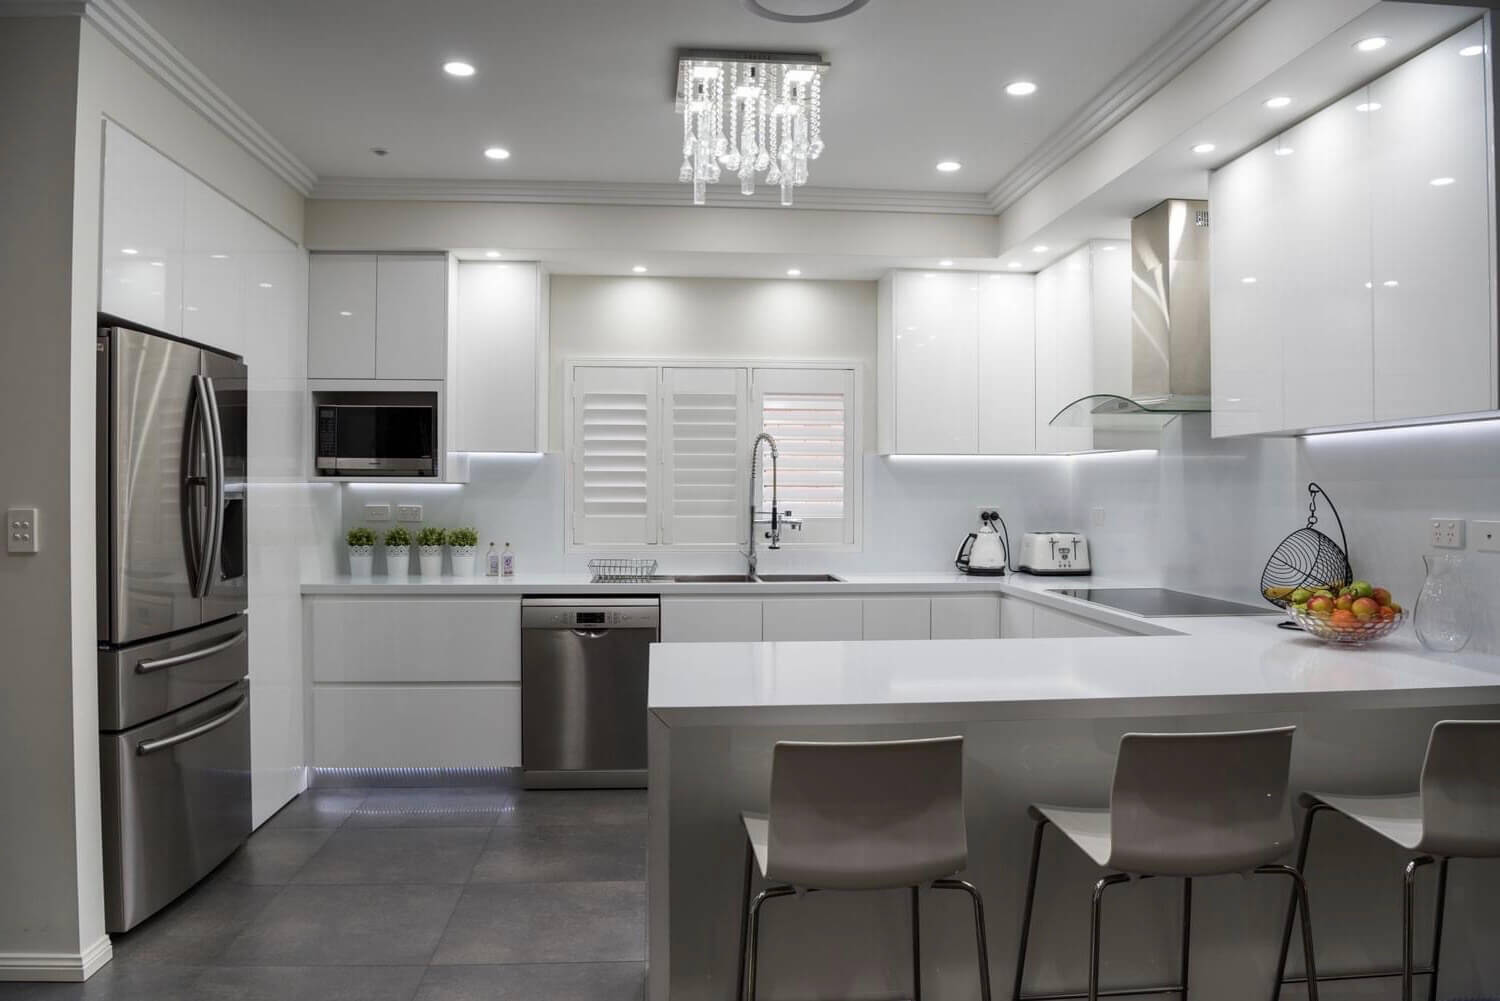 canberra cabinetry